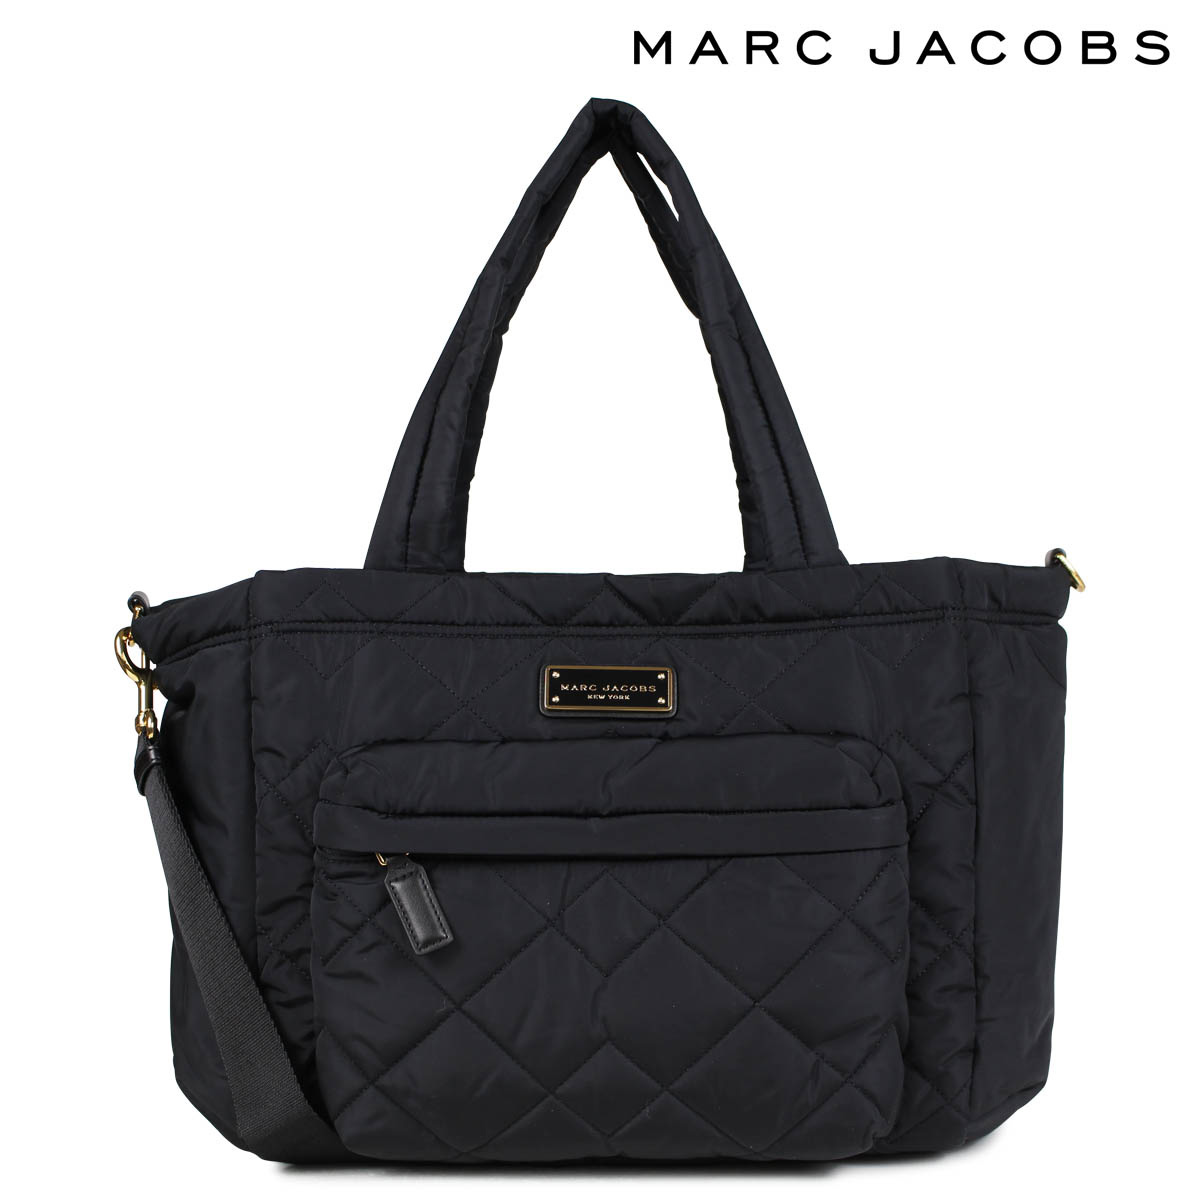 87c2f81384cac Whats Up Sports Marc Jacobs Quilted Nylon Tote Mark Bag